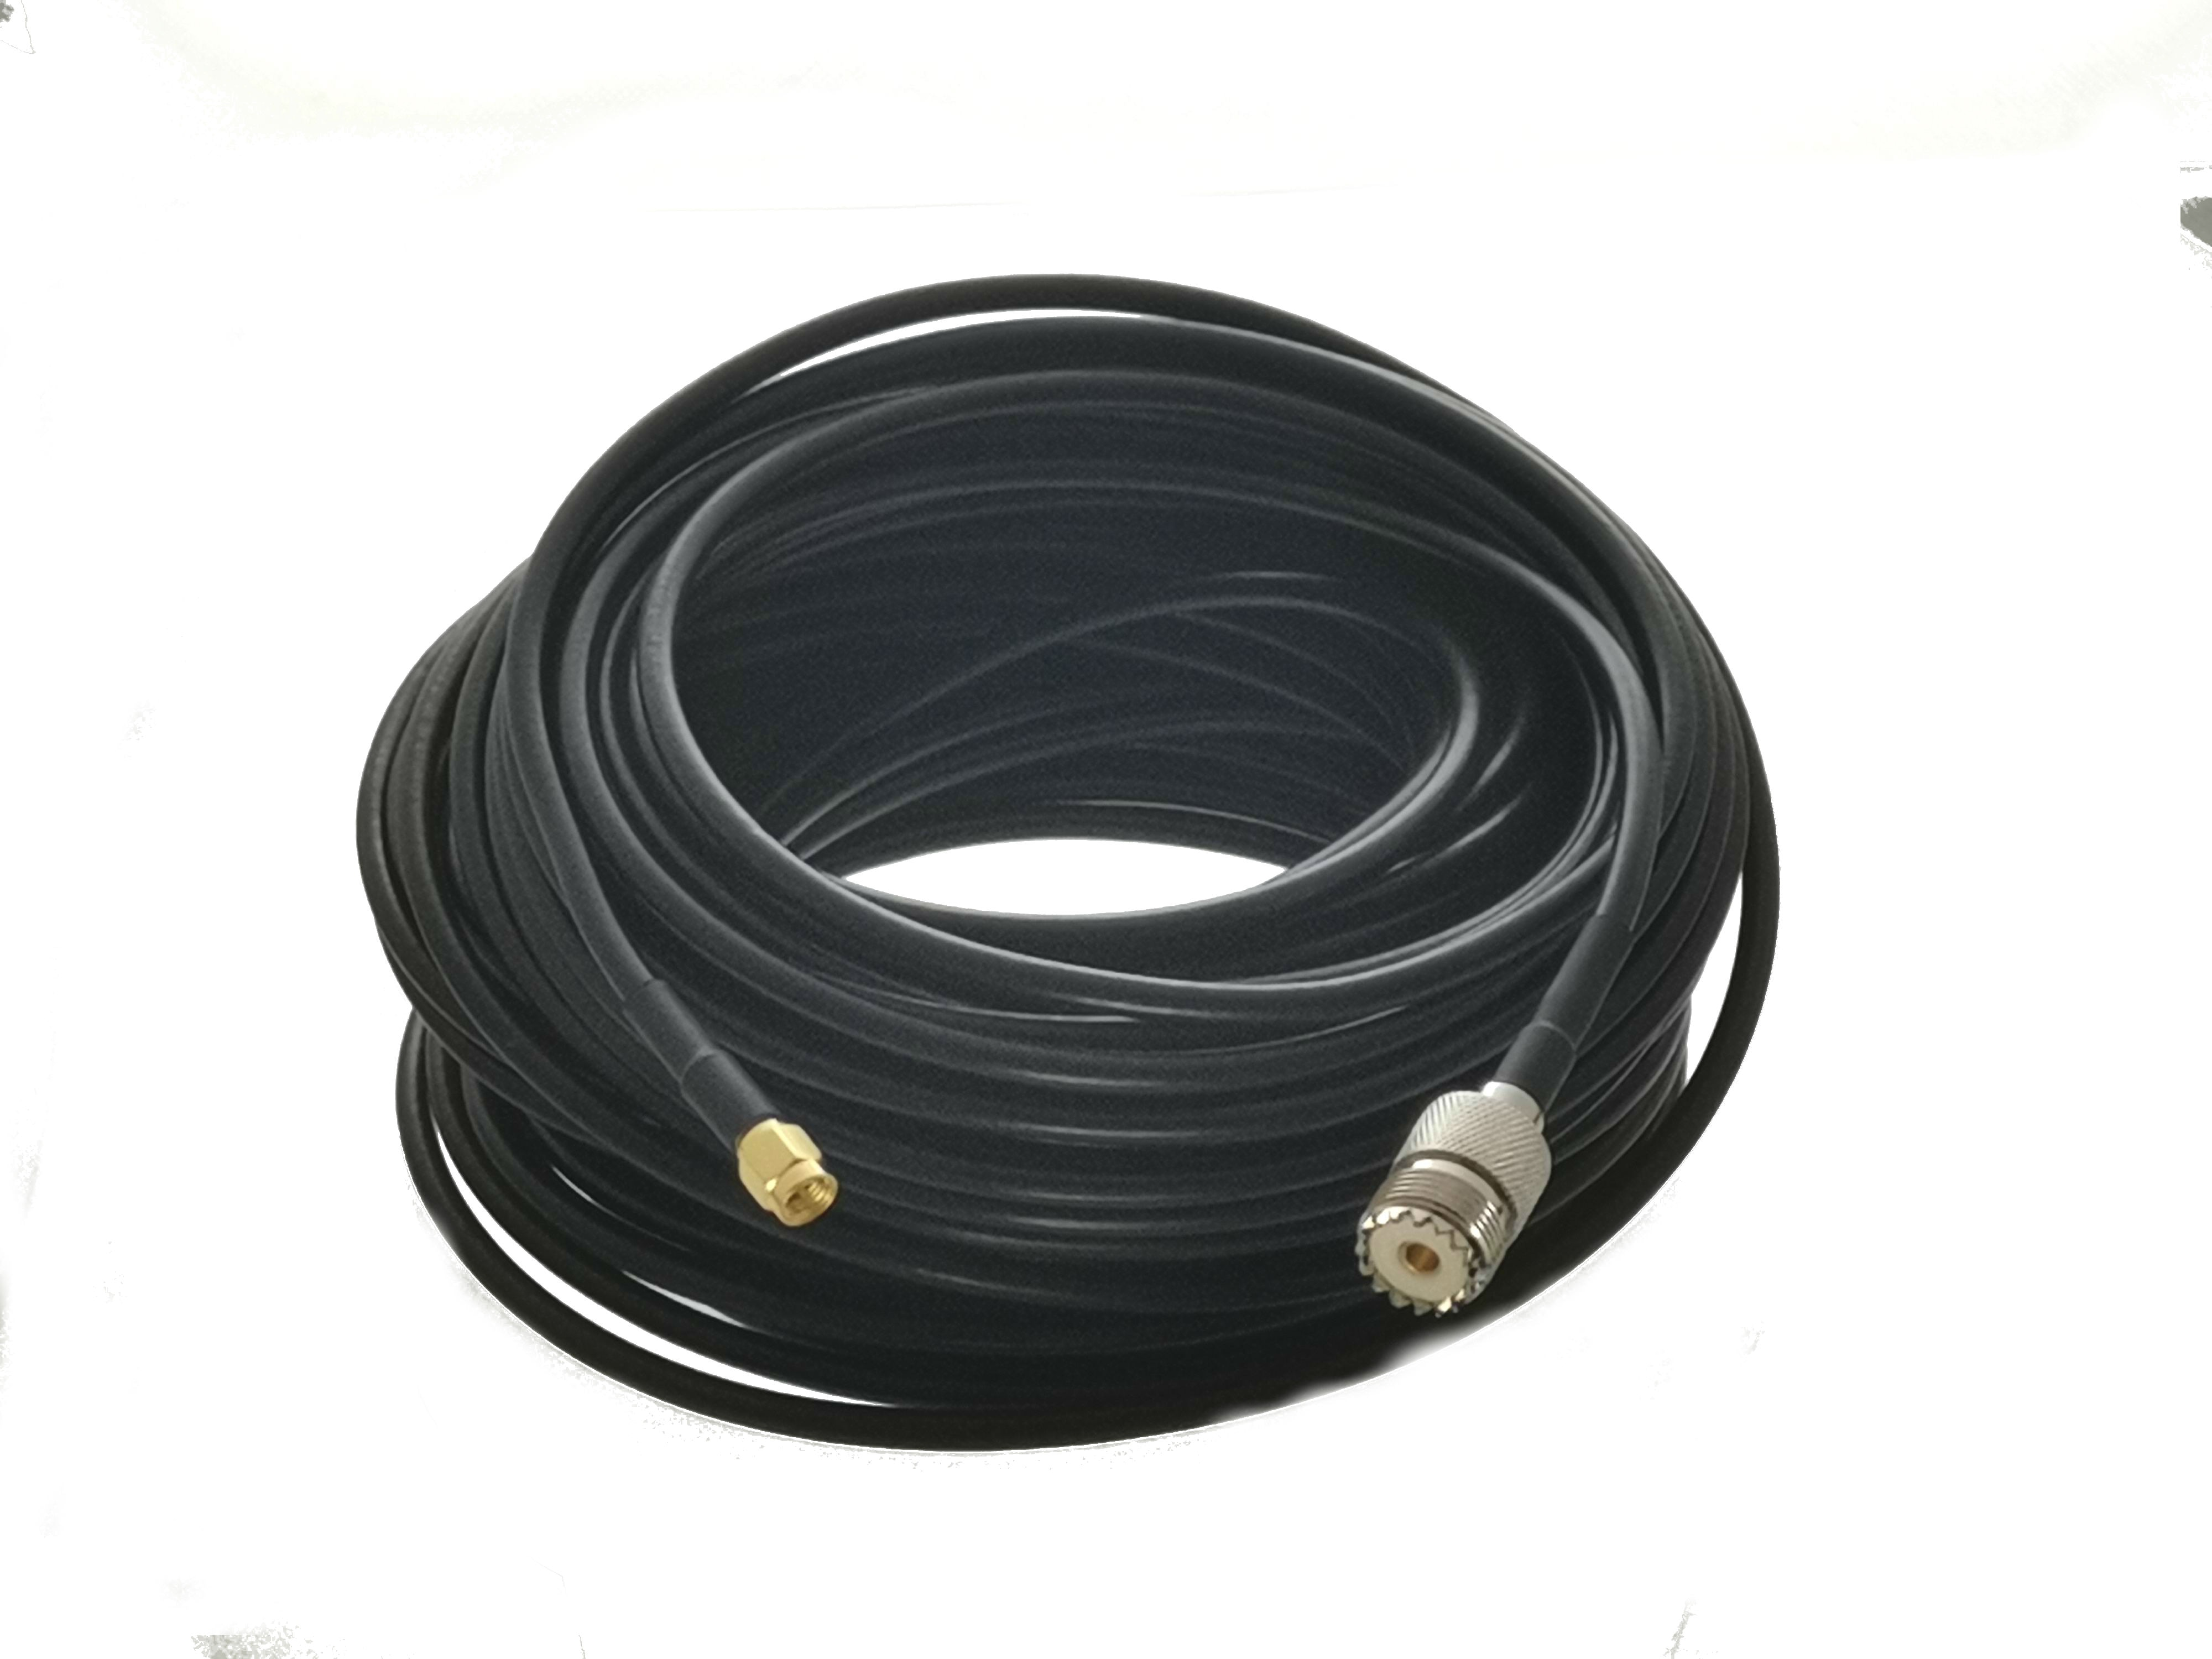 1 Uds Cable SMA macho a SO239 UHF mujer RG58 puente Coaxial...